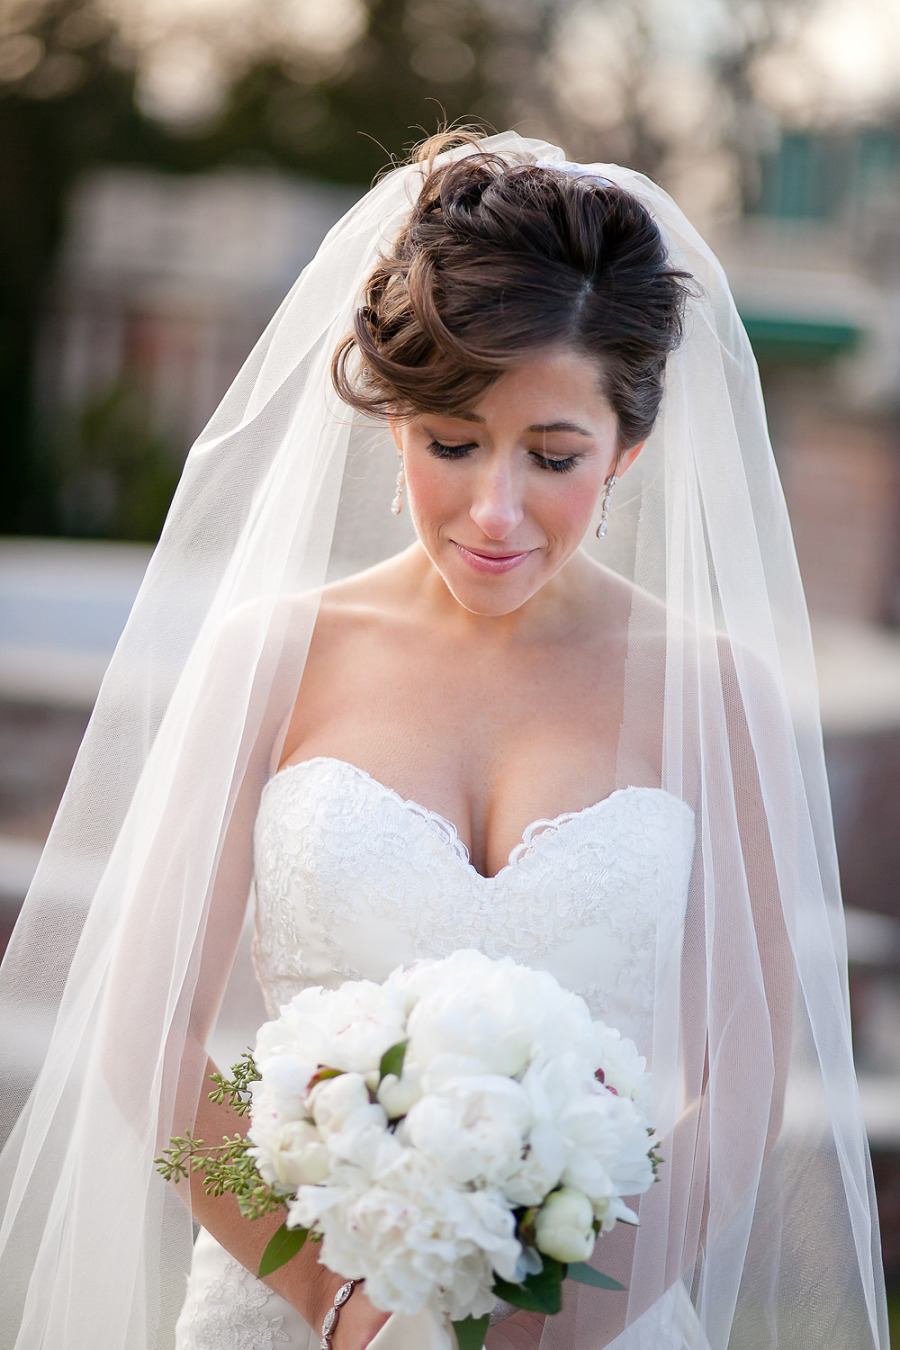 new-jersey-wedding-14-11112014-ky